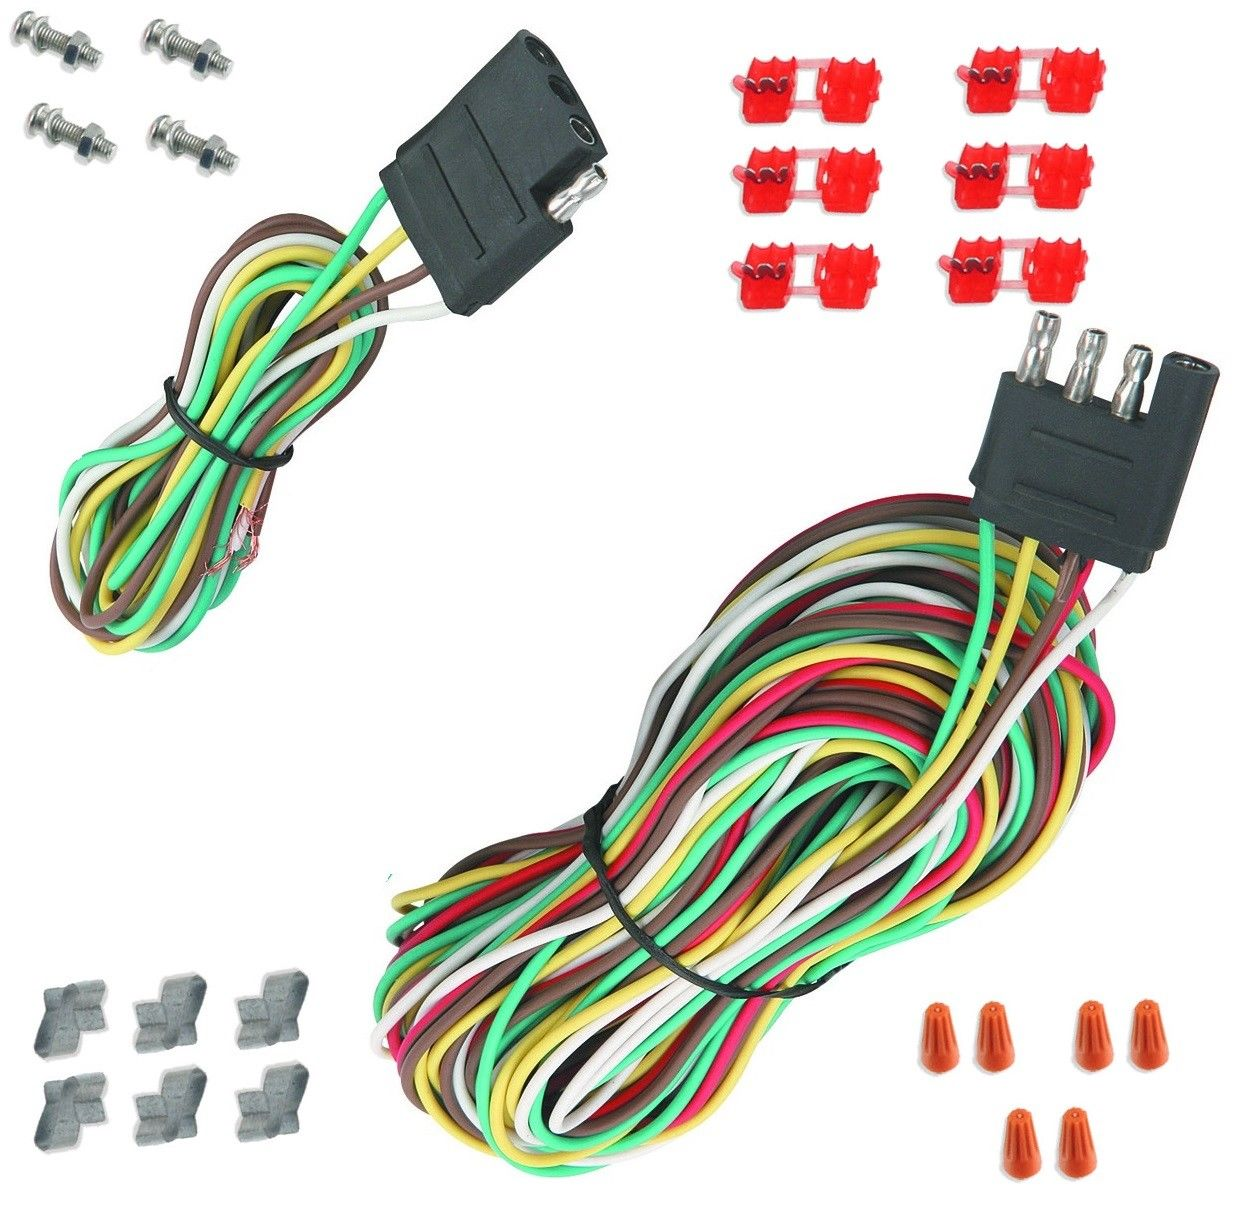 New 25 Ft 4 Way Trailer Wiring Connection Harness Set Rv